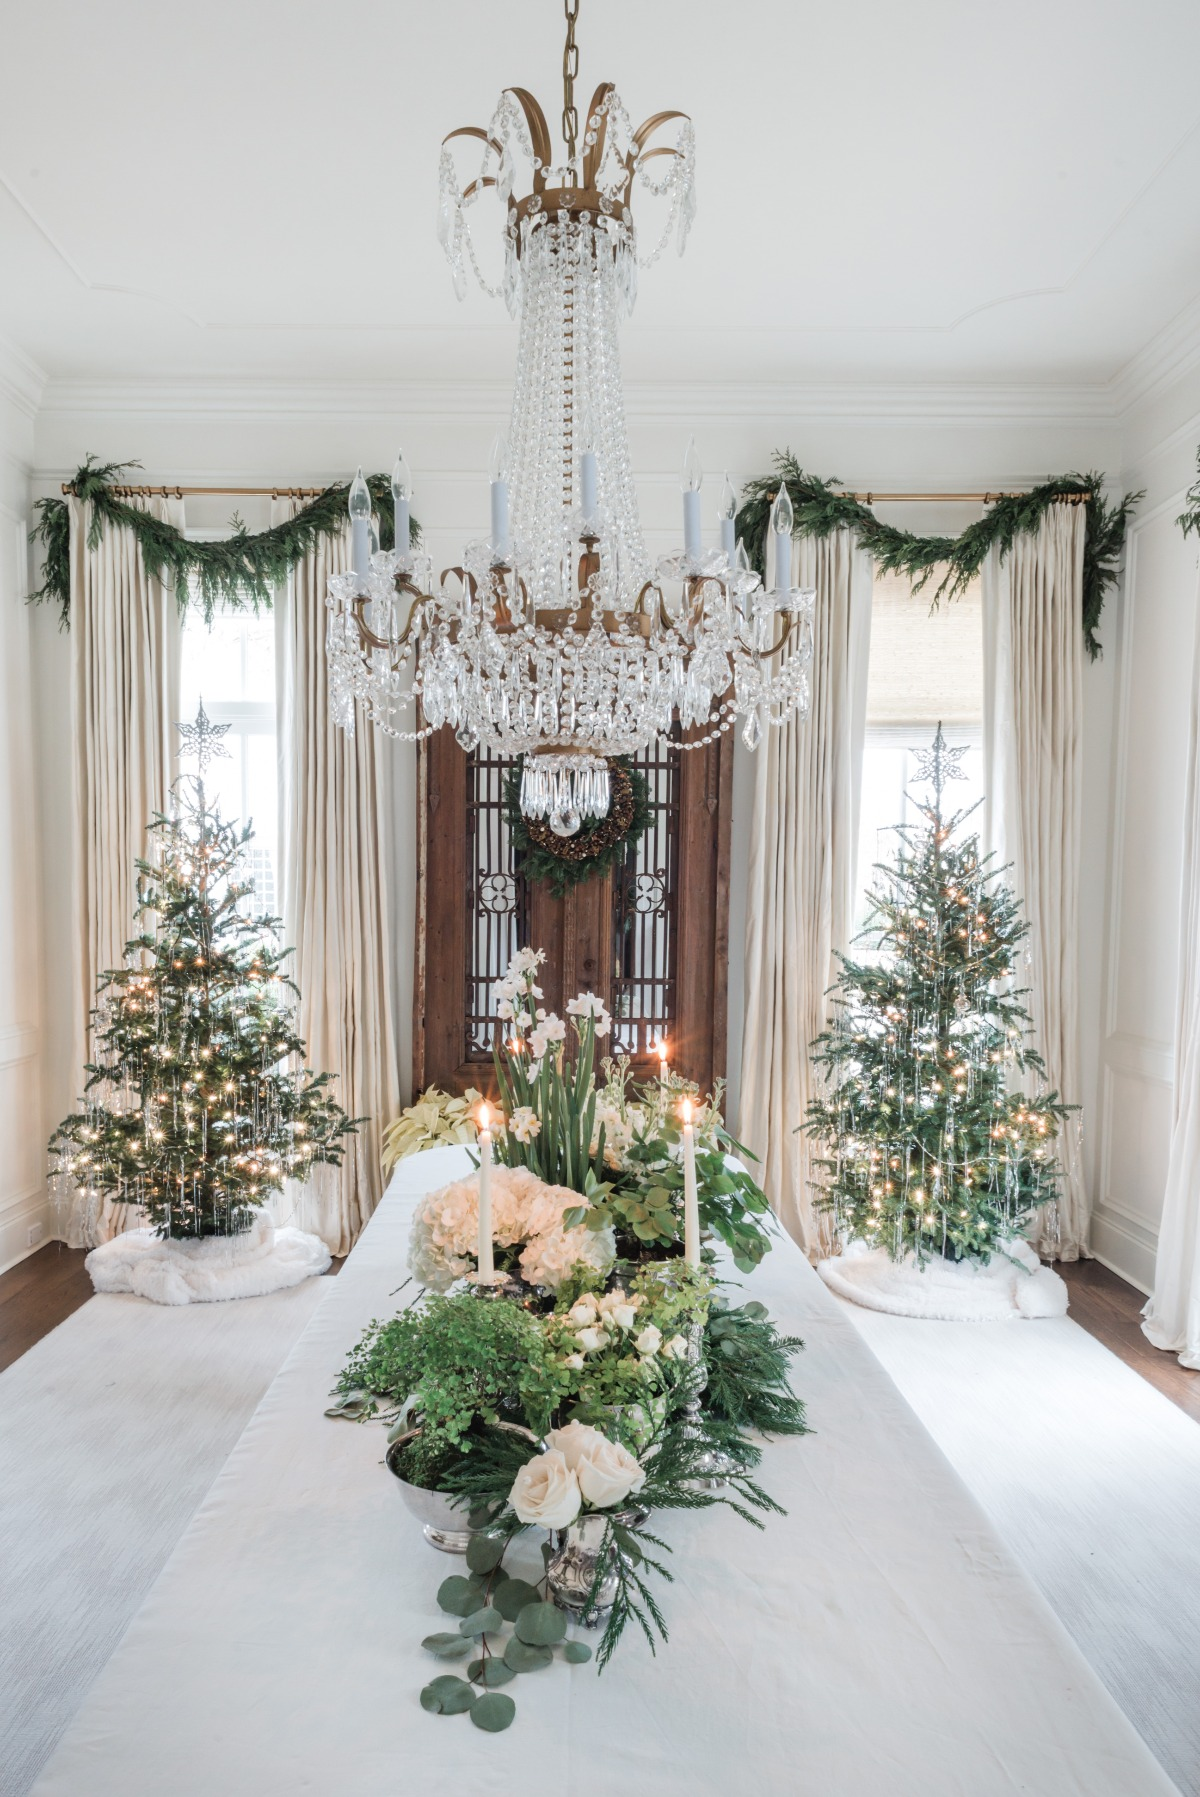 Greenery Christmas decor